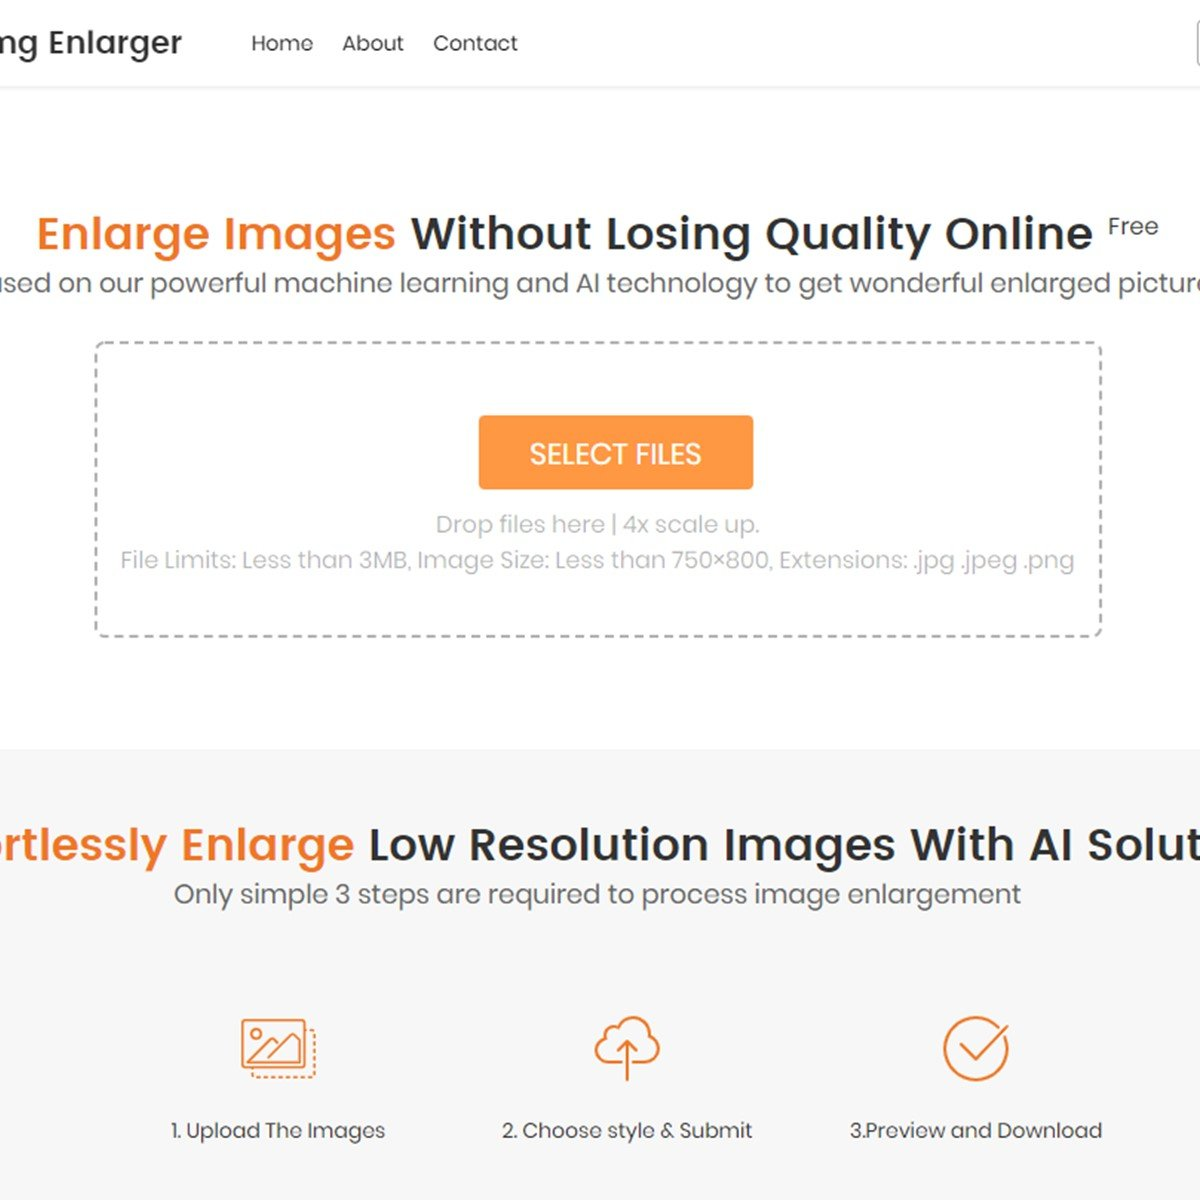 enlarge image without losing quality online free